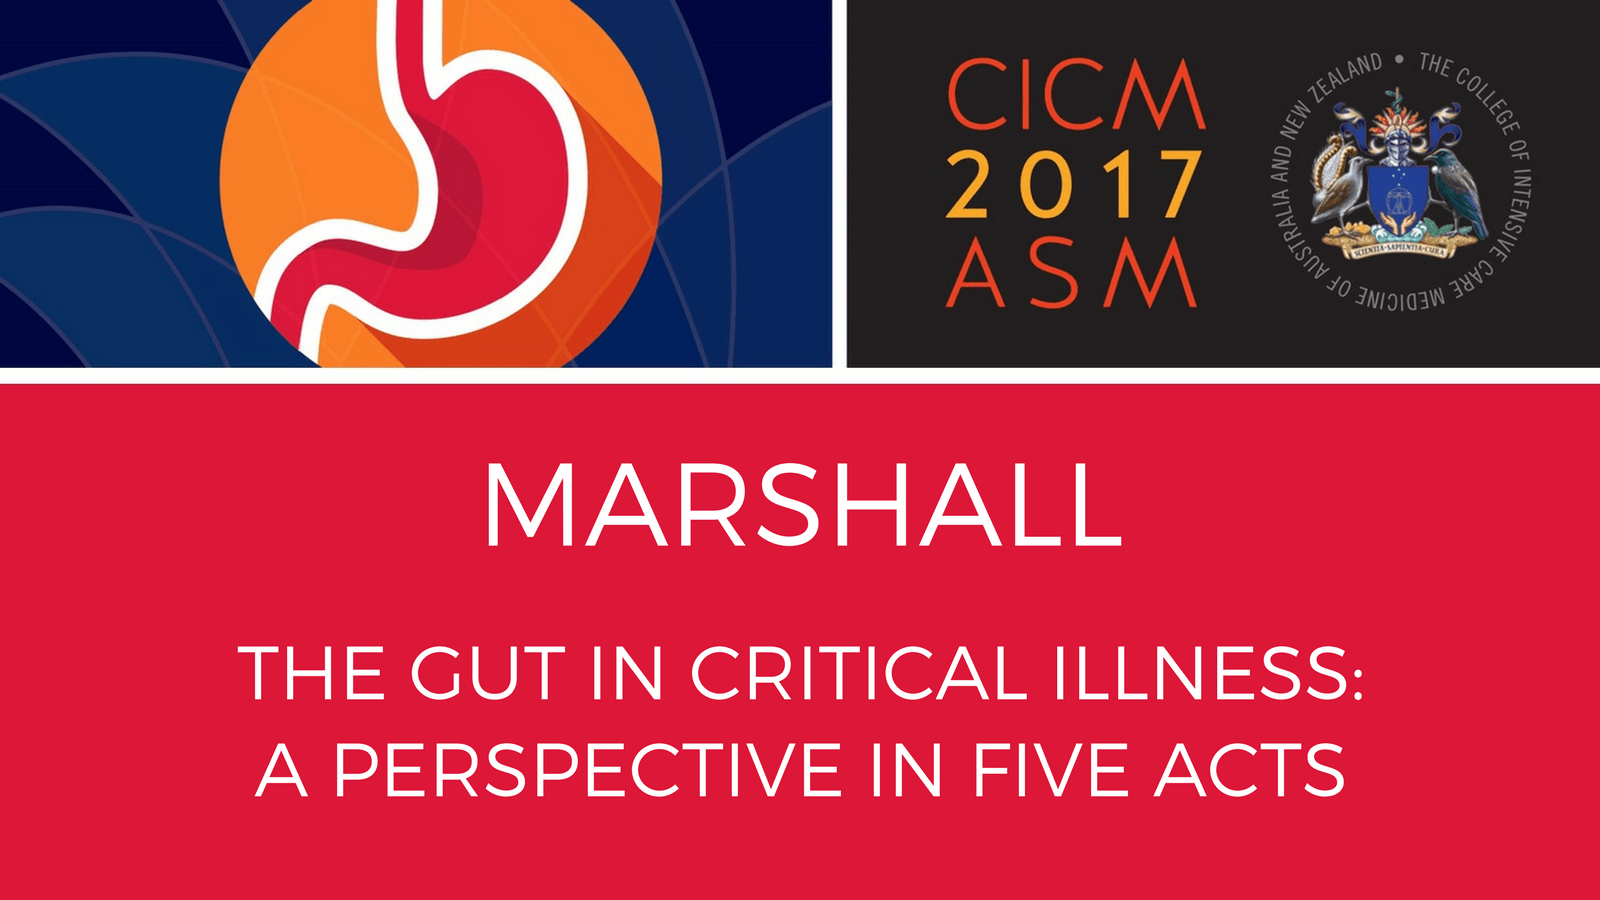 Marshall - The Gut in Critical Illness: A Perspective in Five Acts